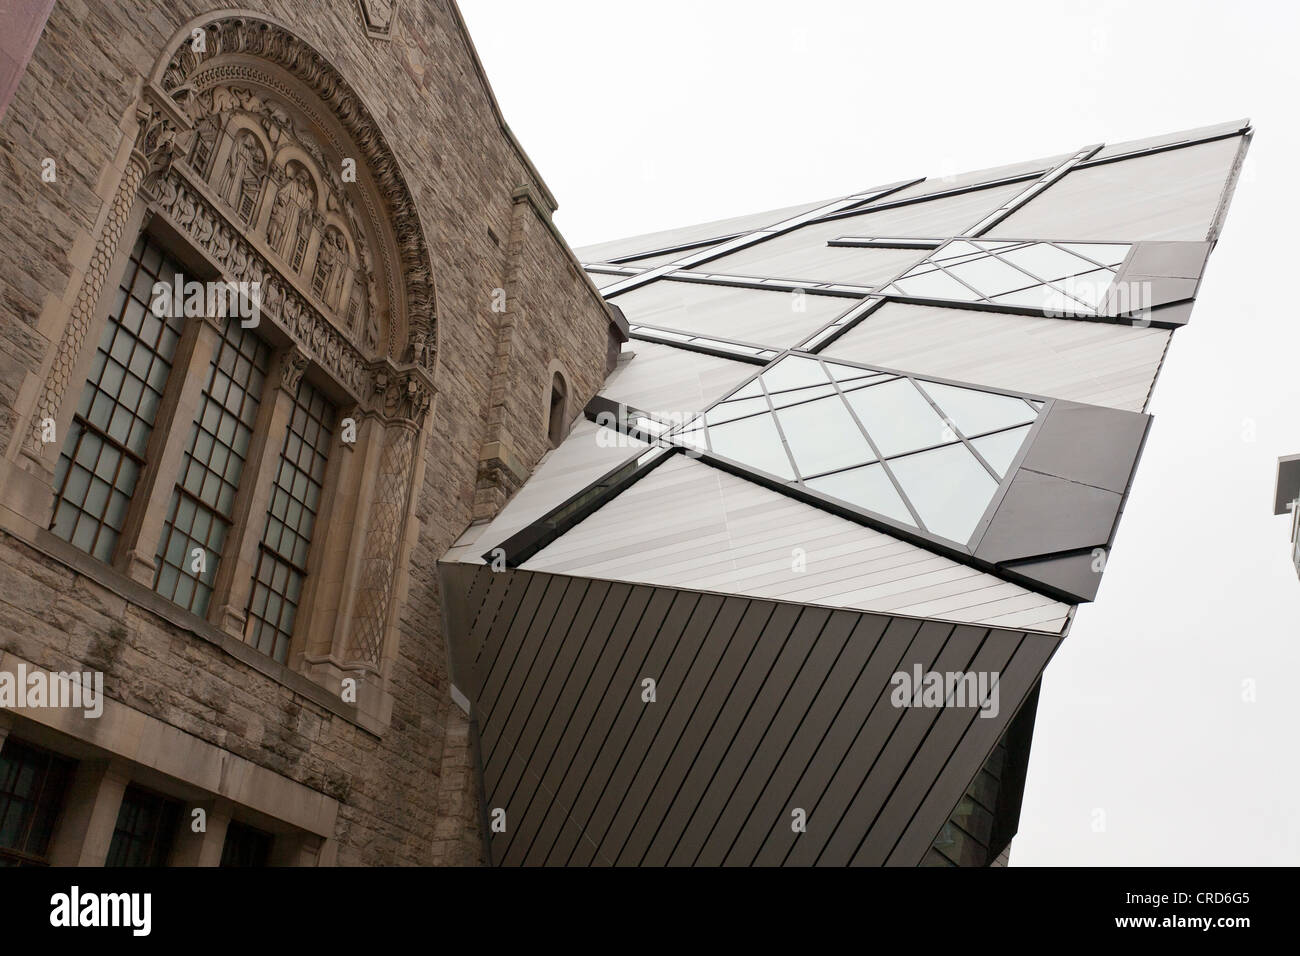 Crystal Encrustation. The crystal addition to the old stone museum building provides a contrast between the architectural - Stock Image